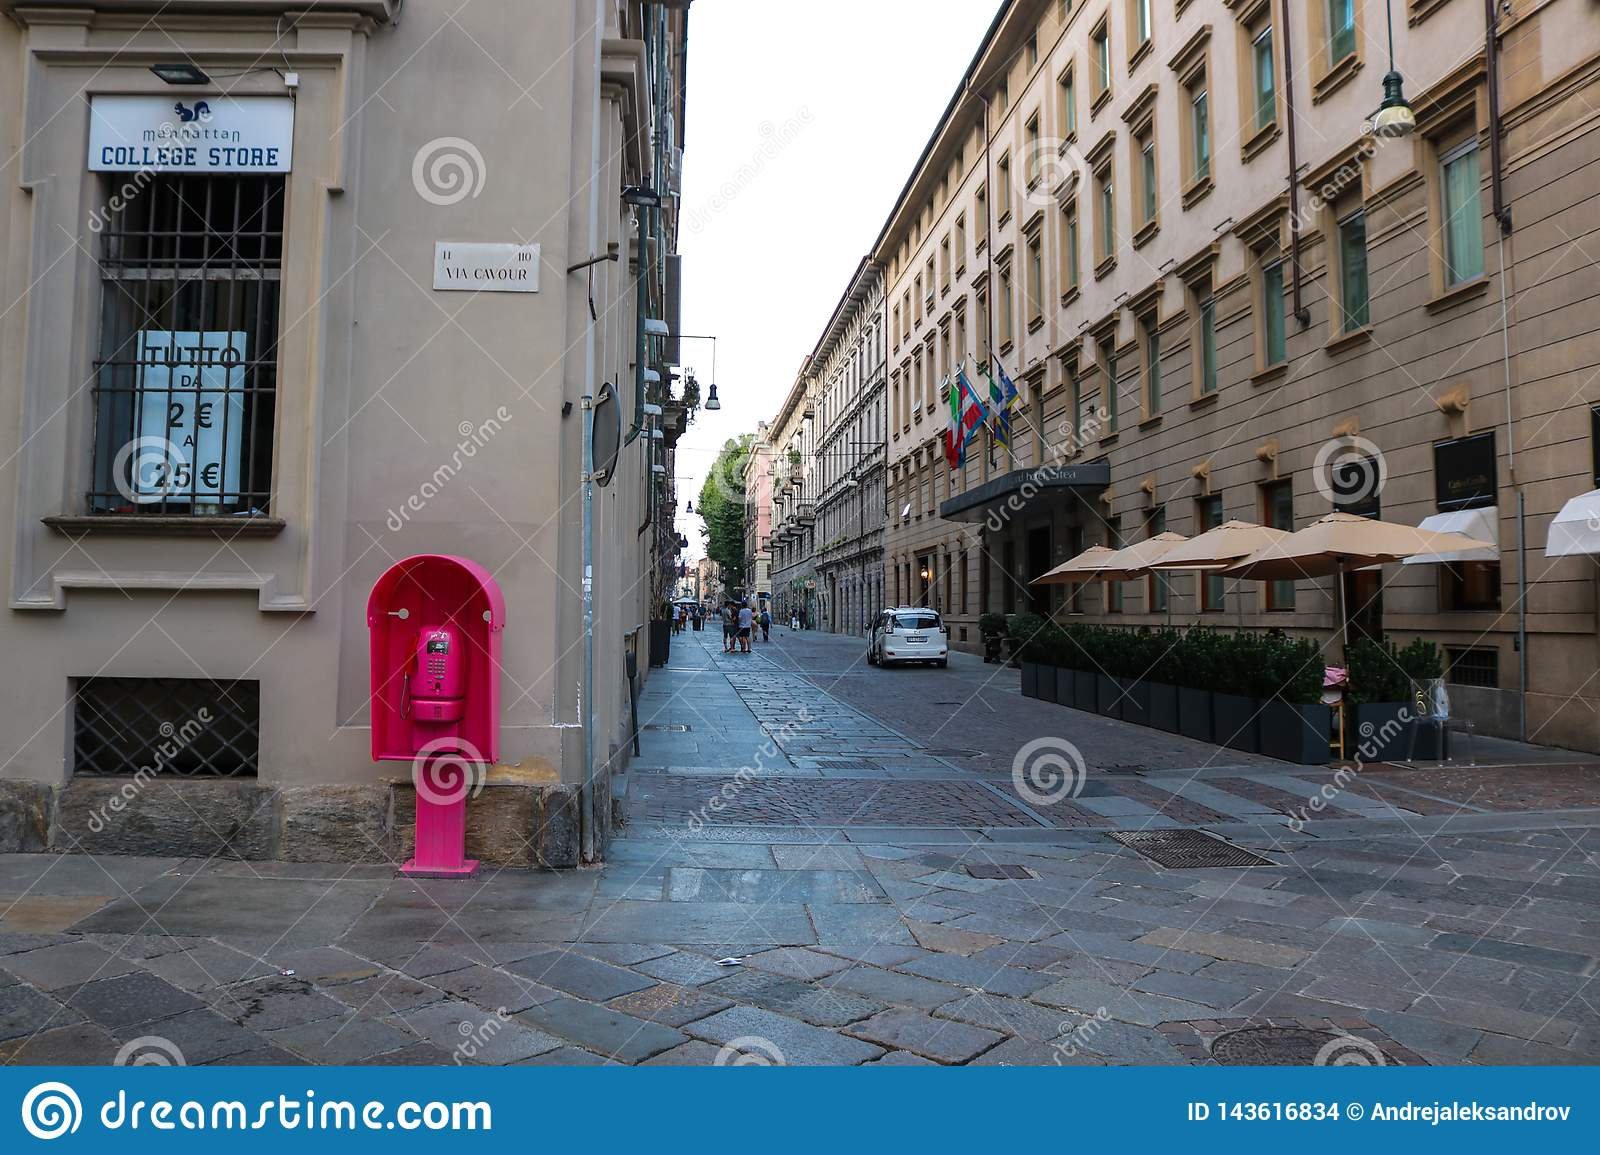 Torino pink telephone booth in the center of the city